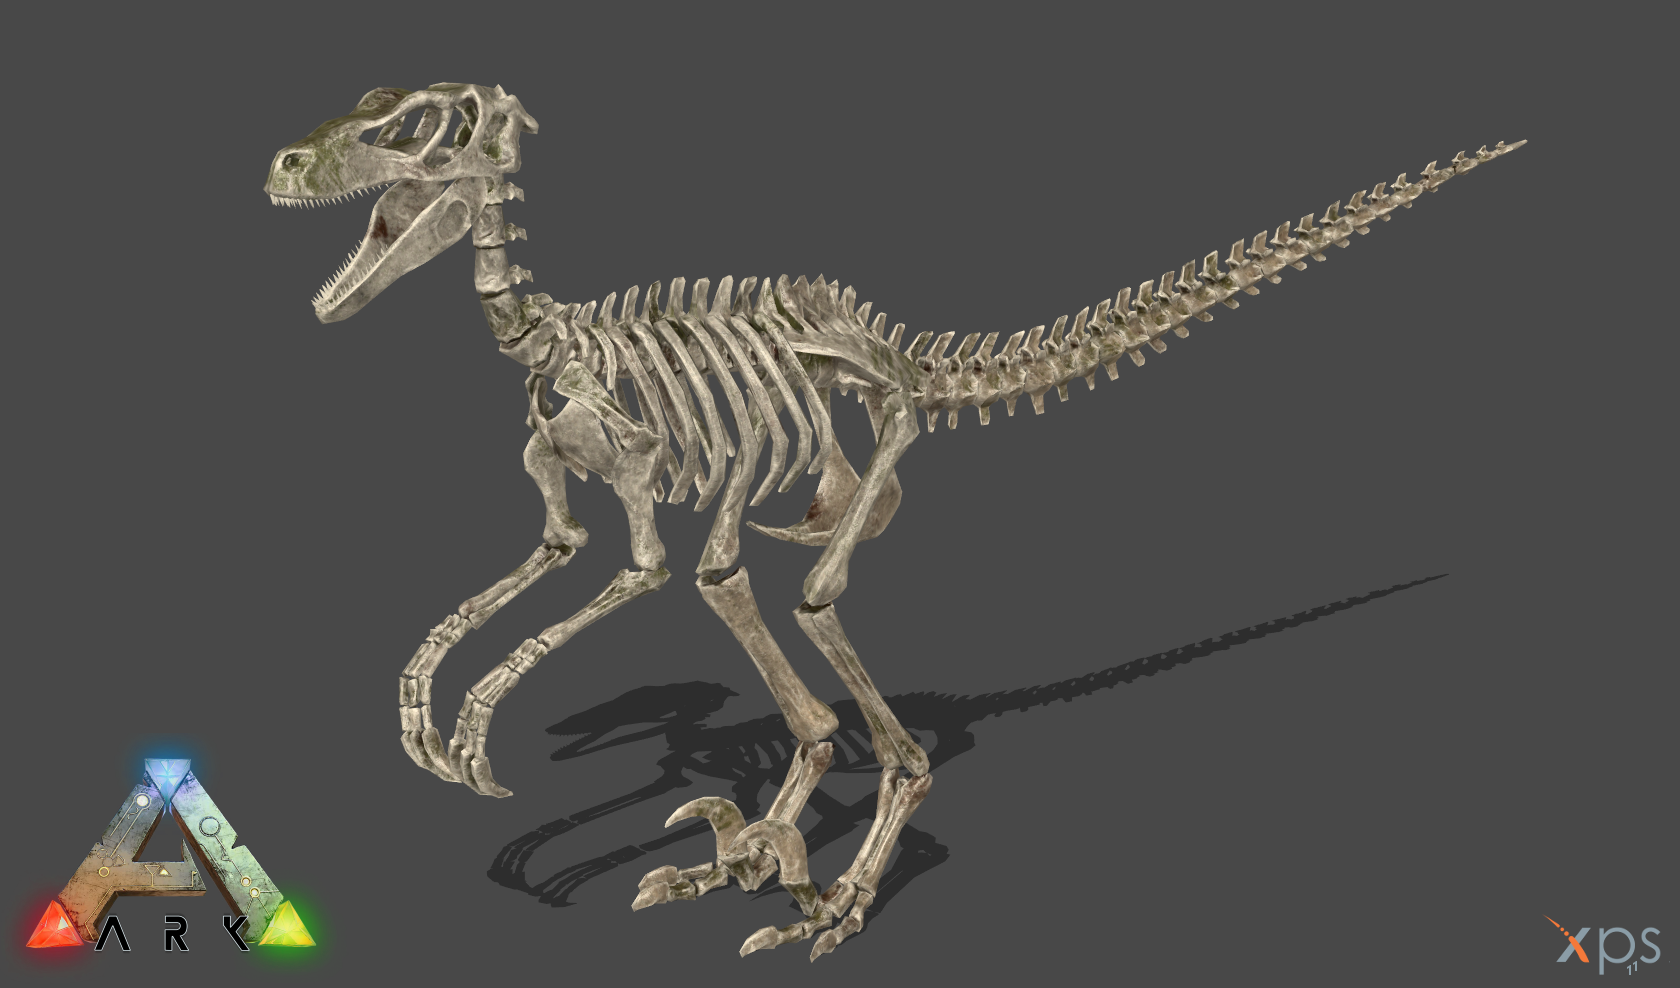 [ARK:SE] Skeletal Raptor by Phelcer on DeviantArt